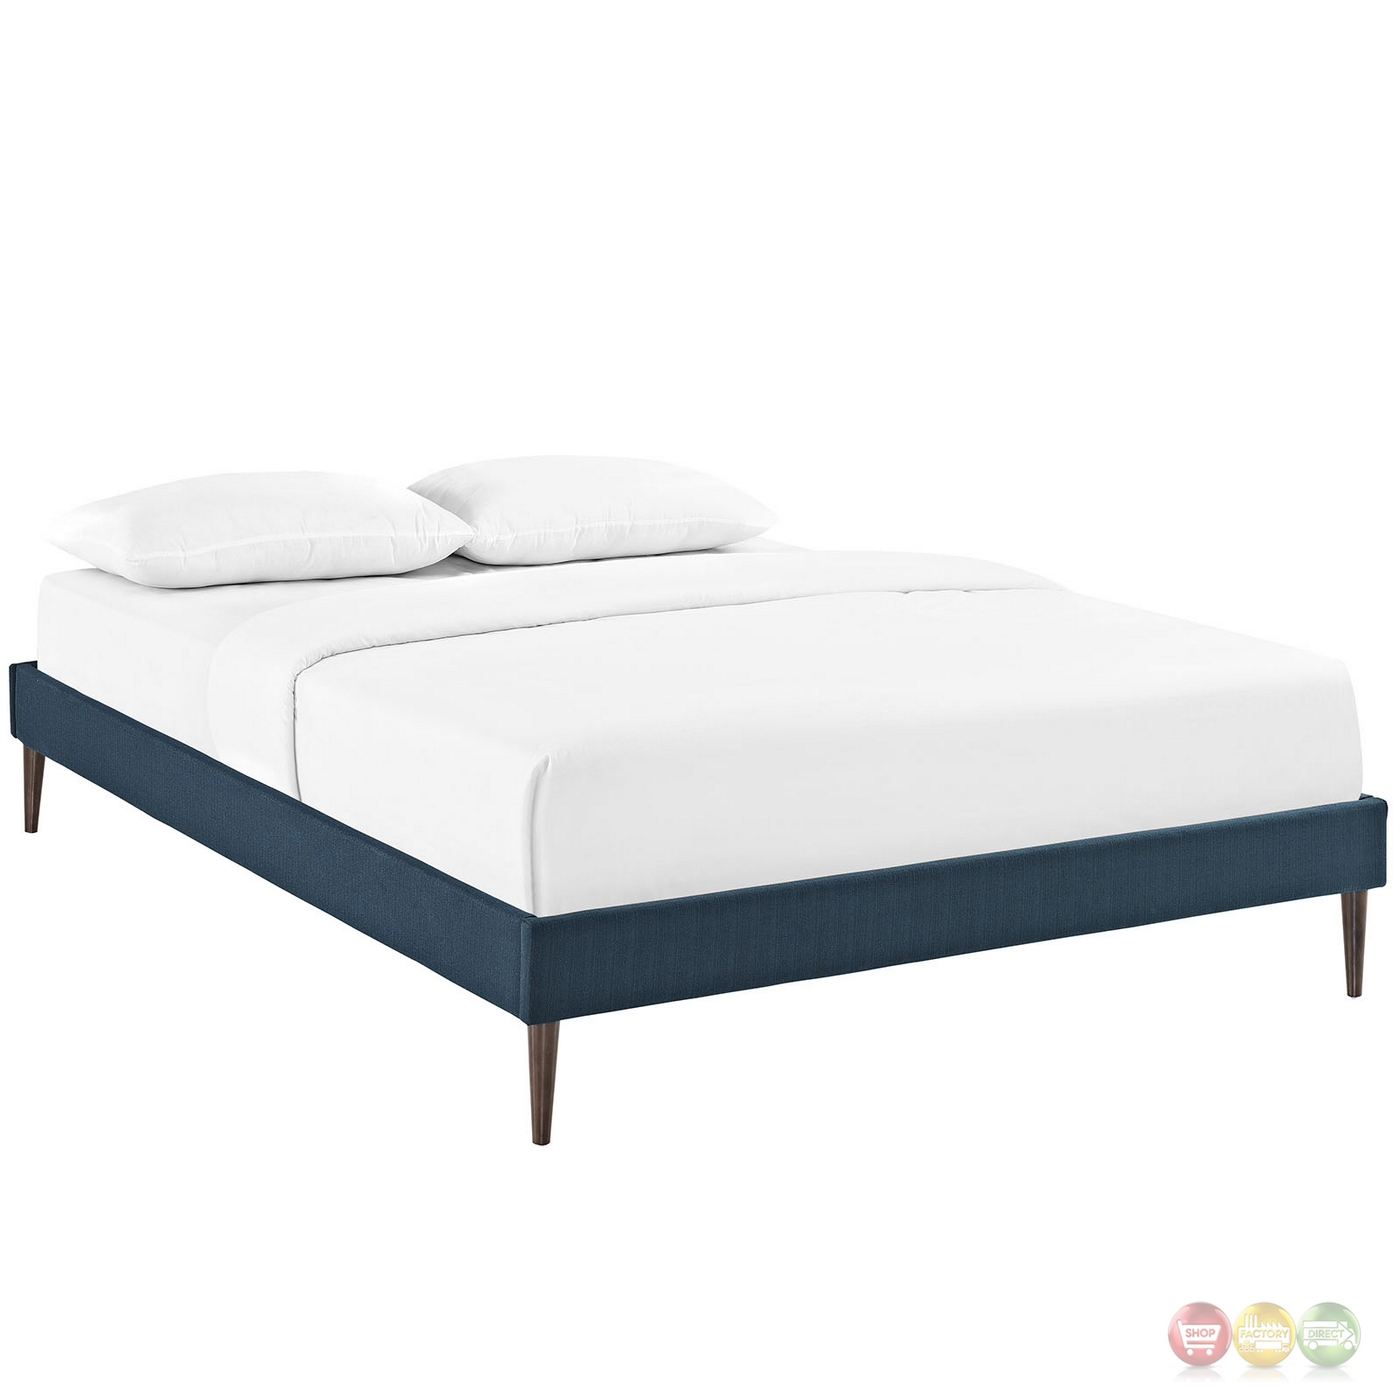 Sherry upholstered fabric king platform bed frame azure Platform king bed